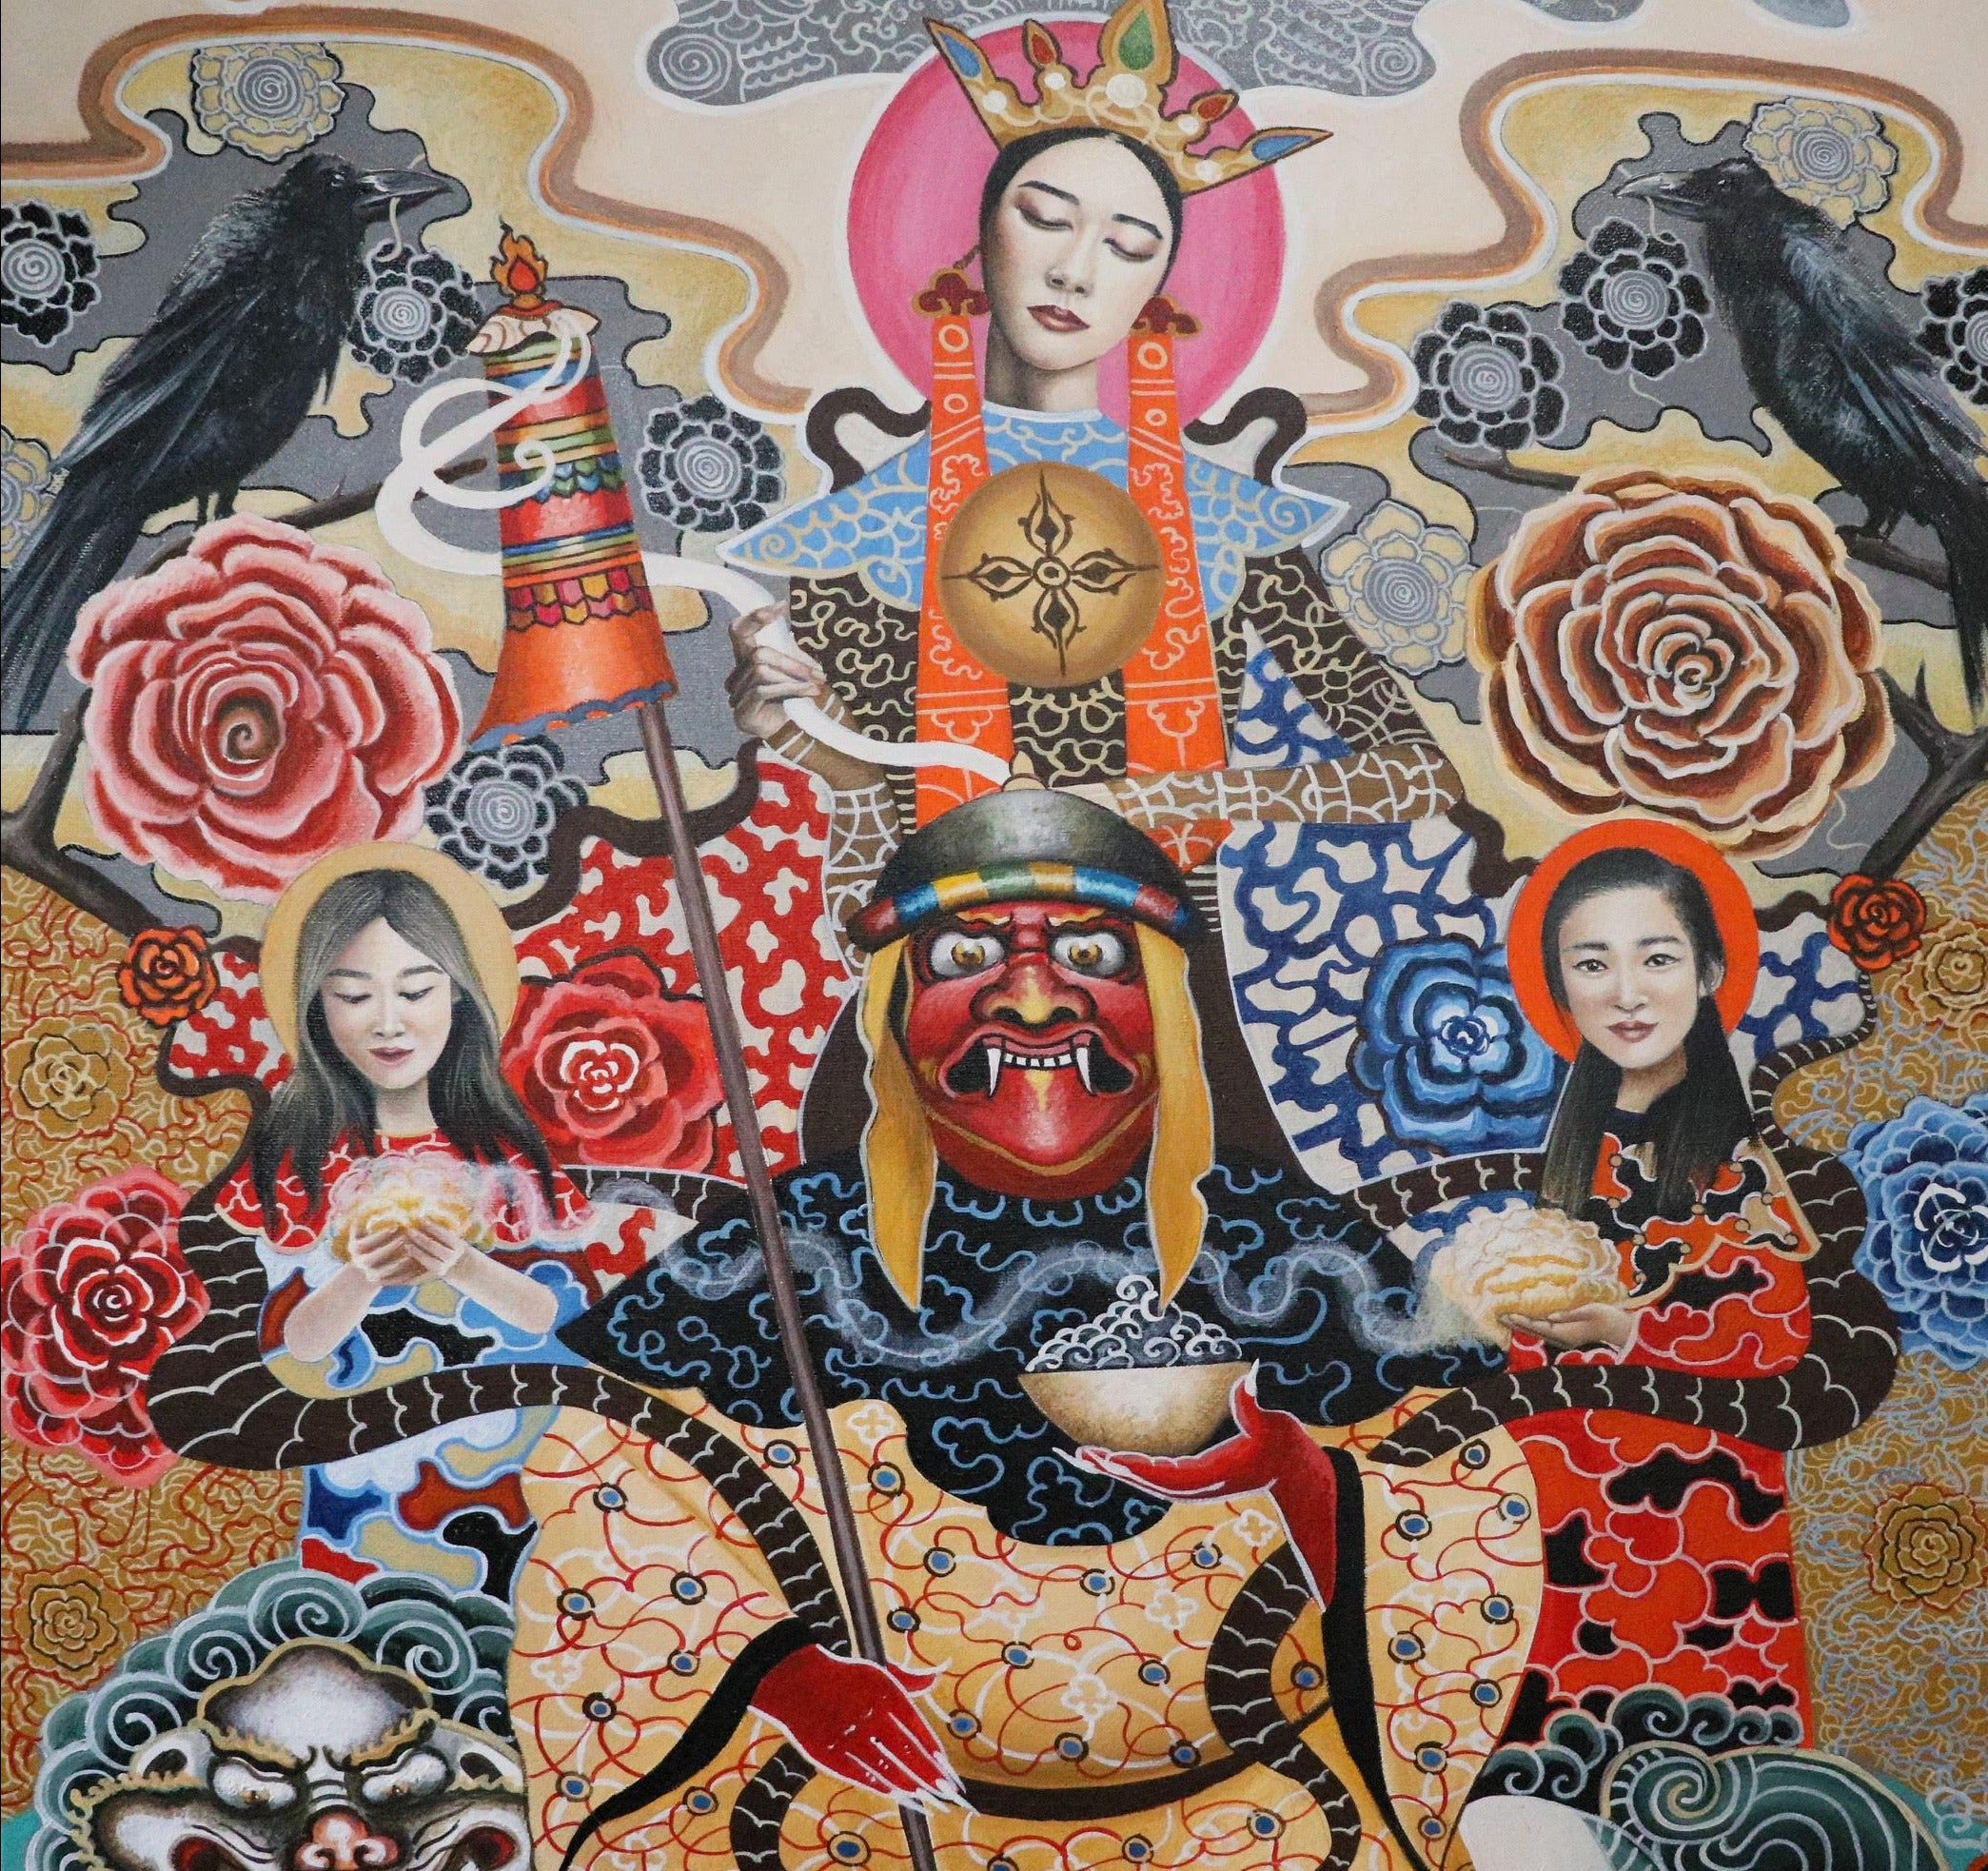 Shamanic Ecstasy by the Twinz, 2019, Bhutan